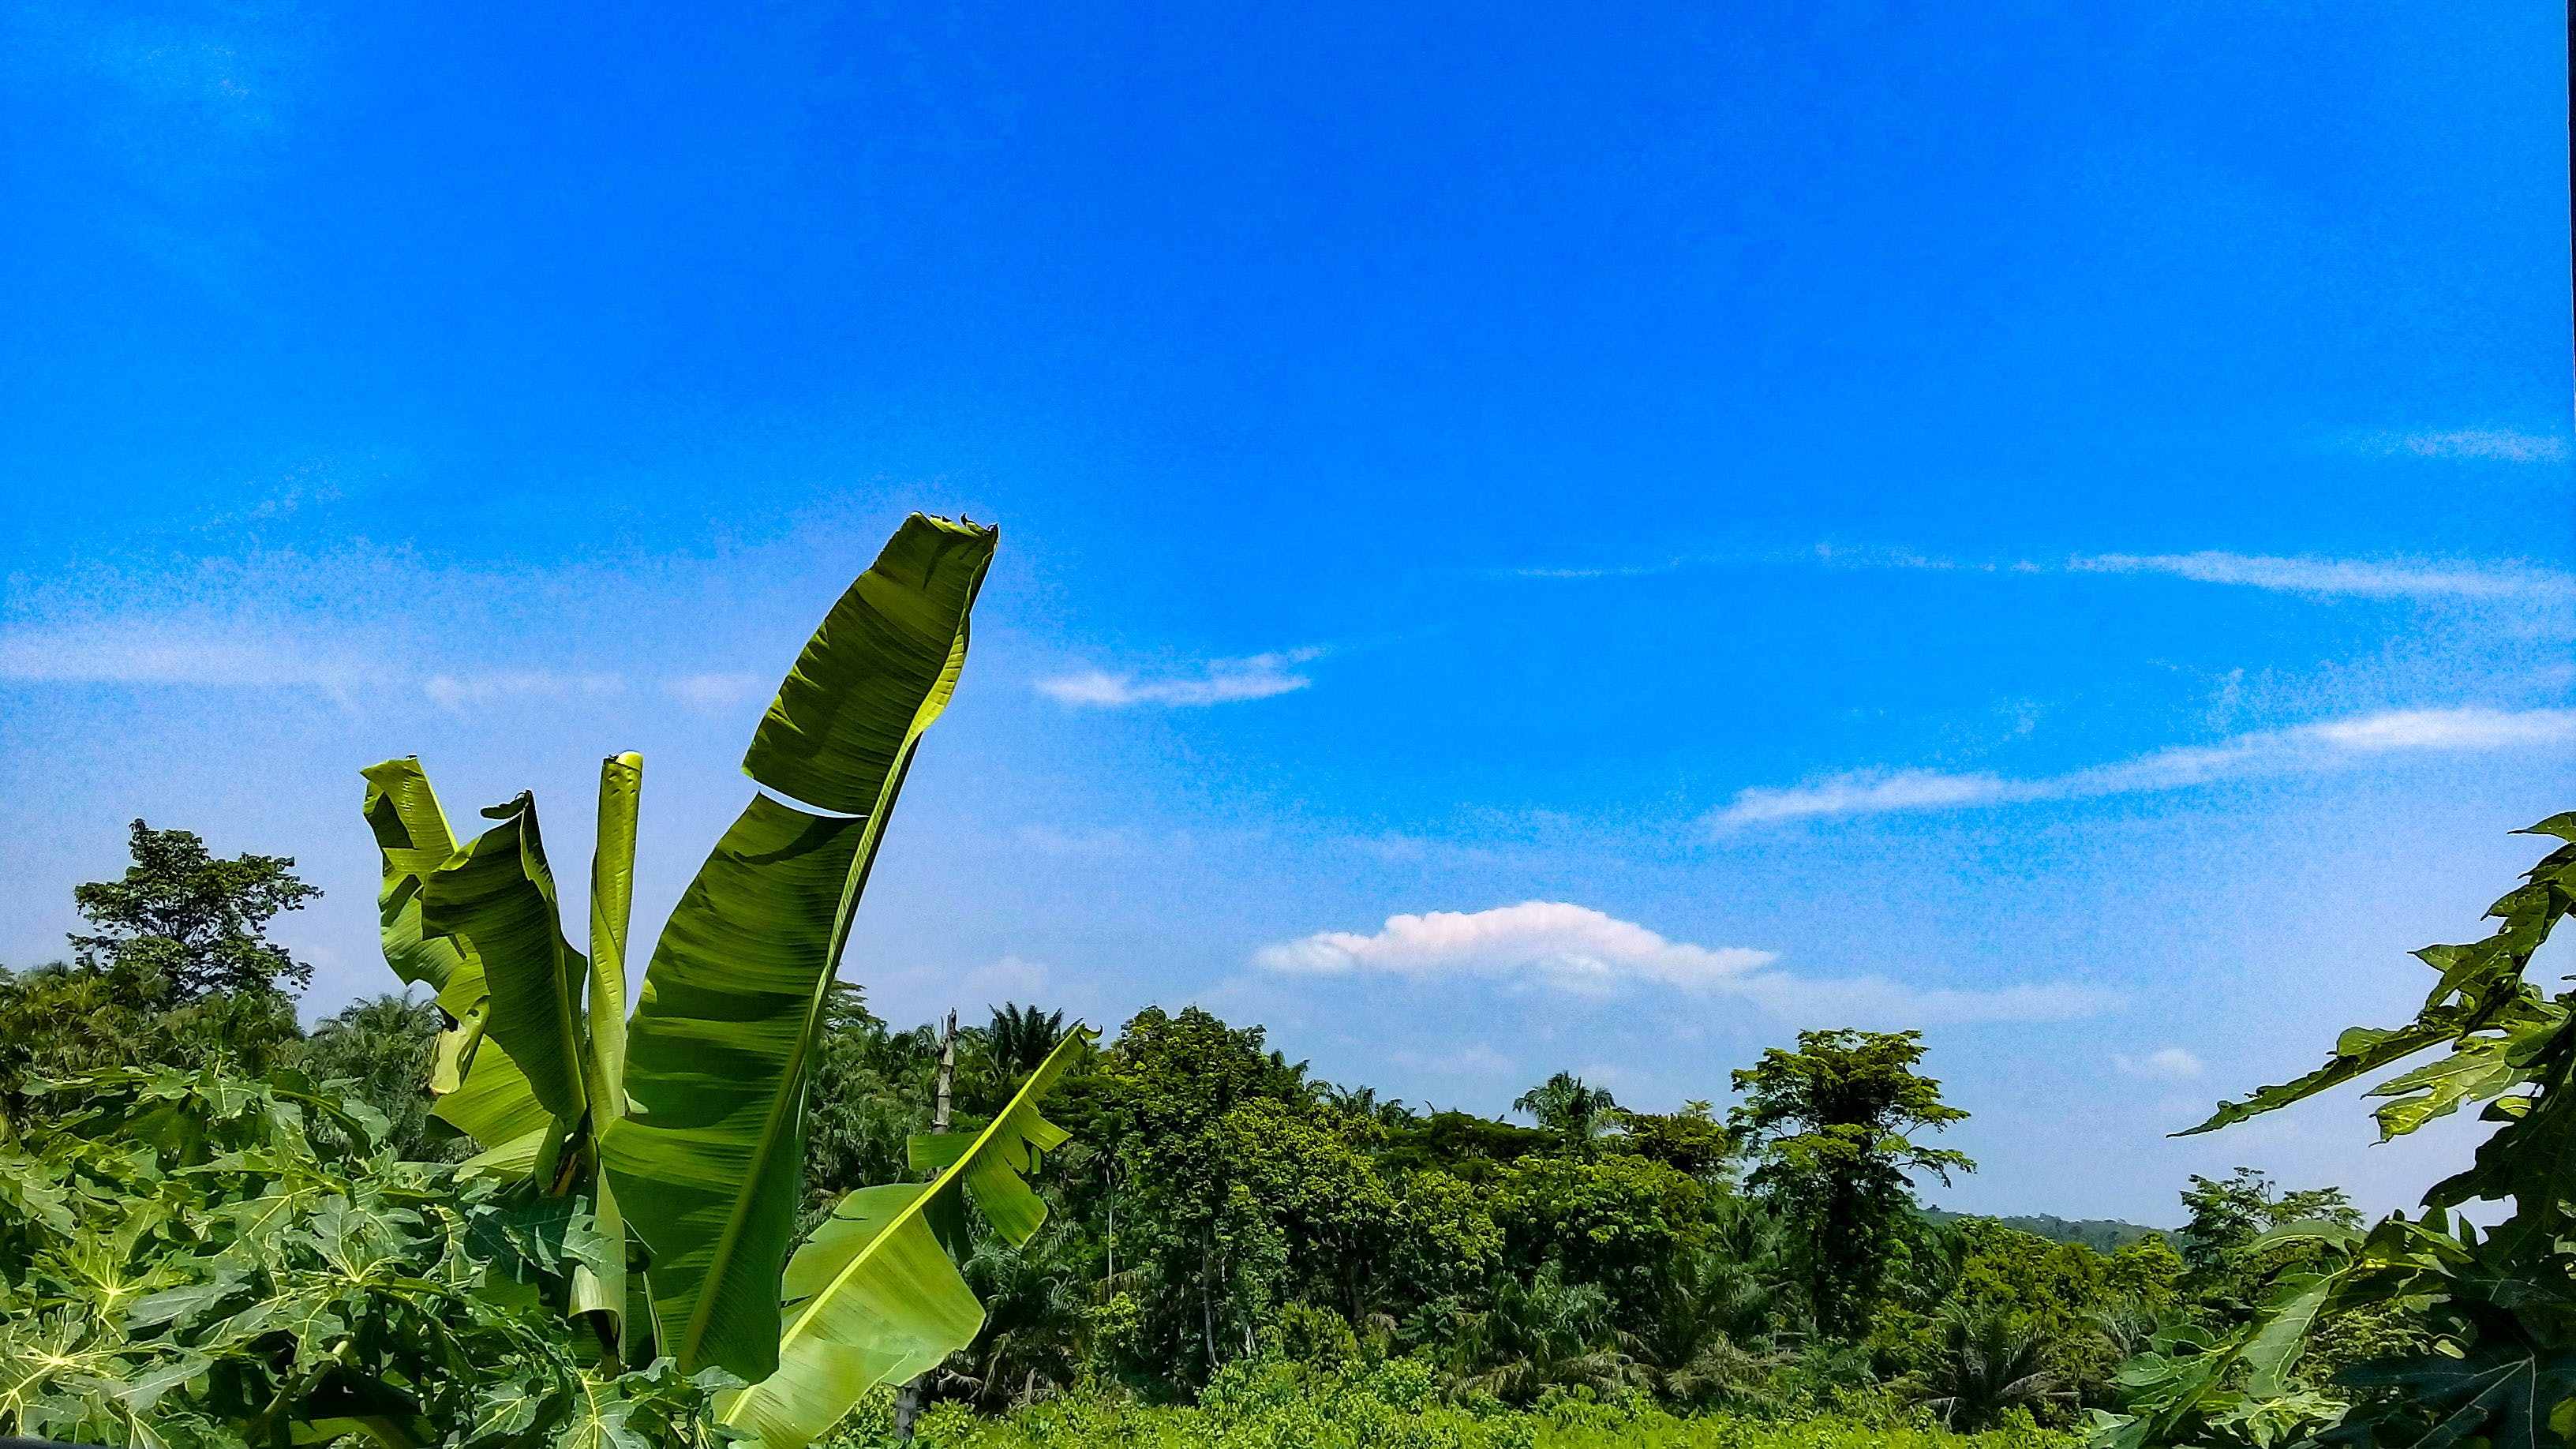 Free stock photo of blue skies, blue sky, green leaf, healthy lifestyle